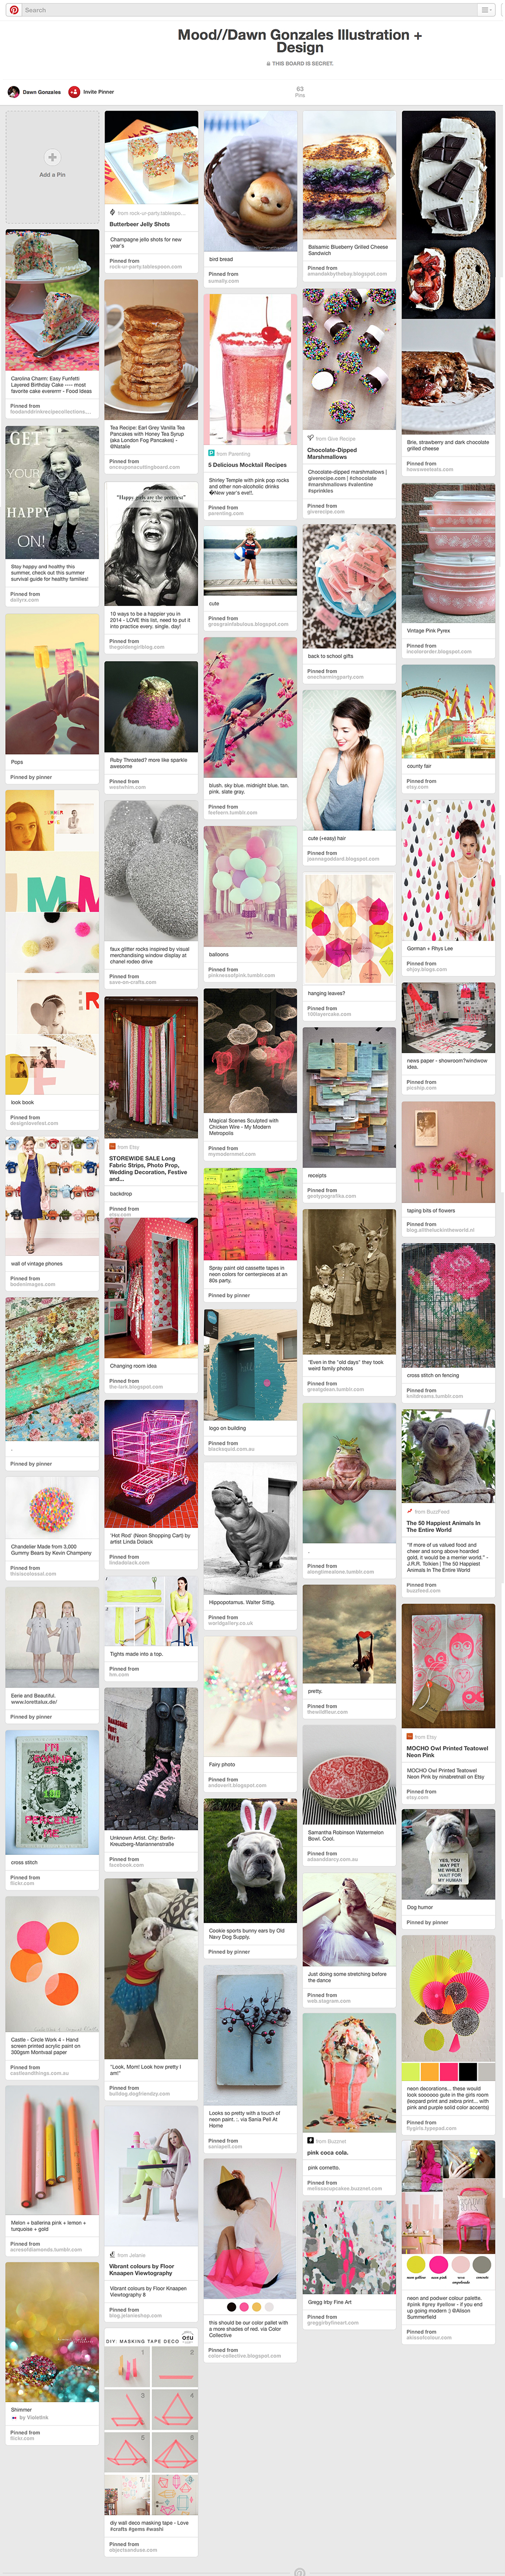 Pinterest Mood Board for Dawn Gonzales Illustration + Design